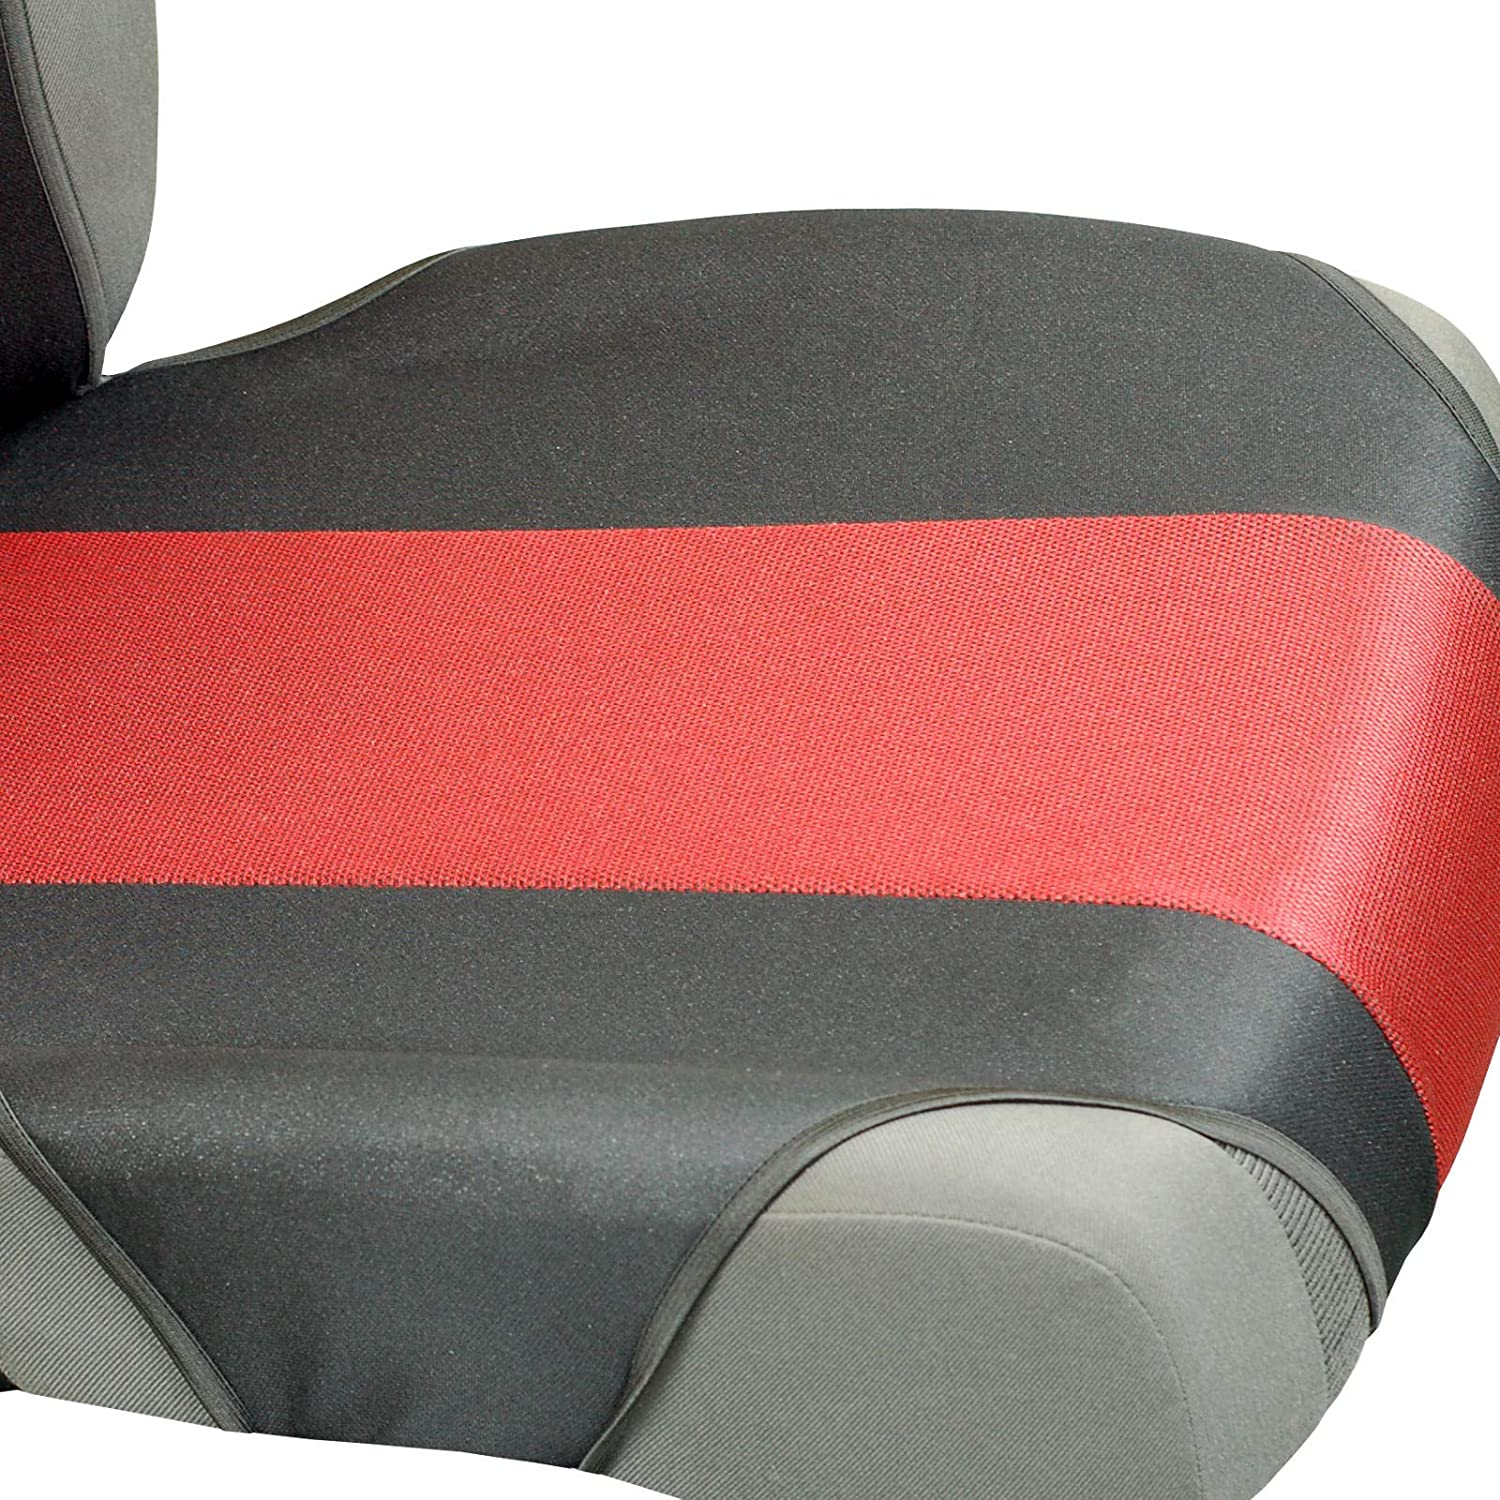 Car Seat Covers for Qashqai Front Seats Color Premium Red /& Black